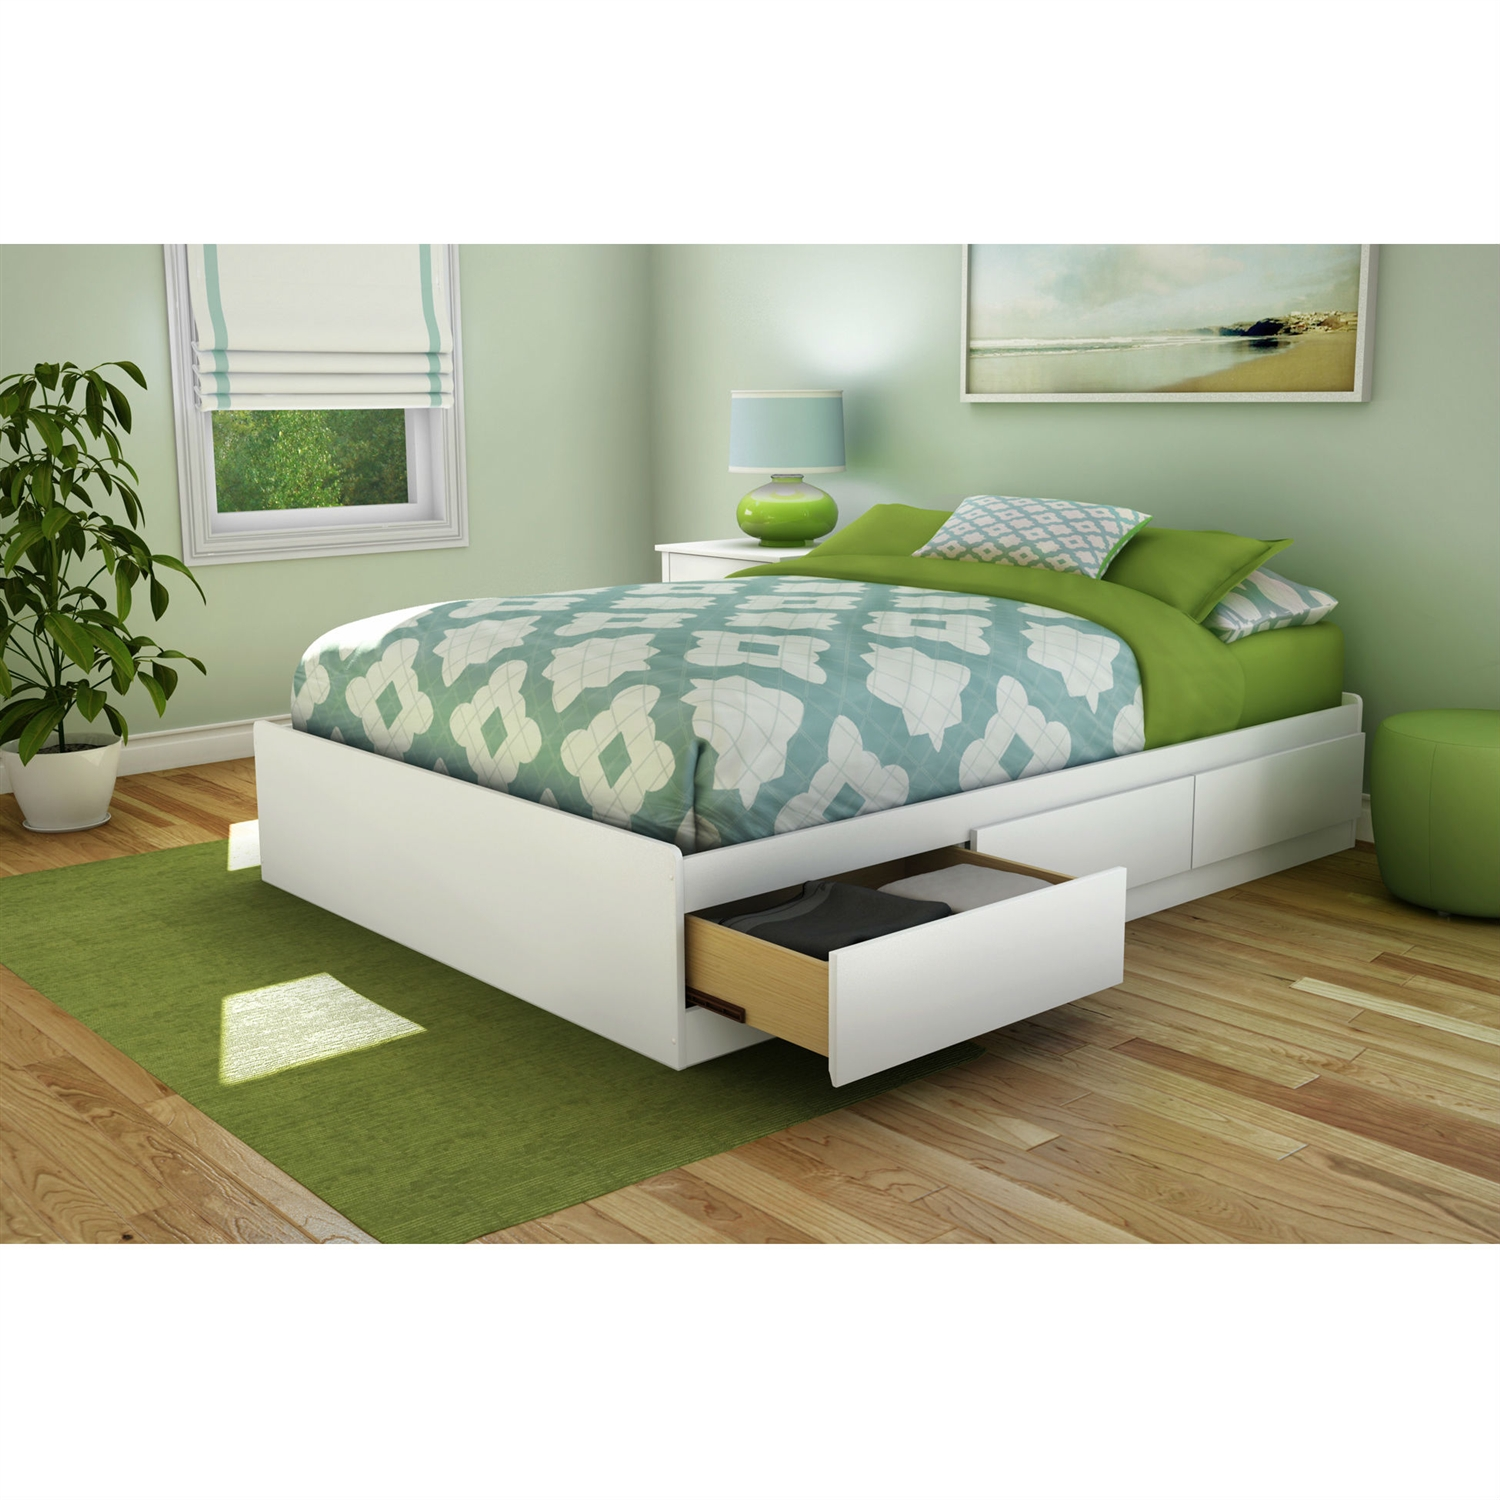 Full Size Contemporary Platform Bed With 3 Storage Drawers In White Fastfurnishings Com